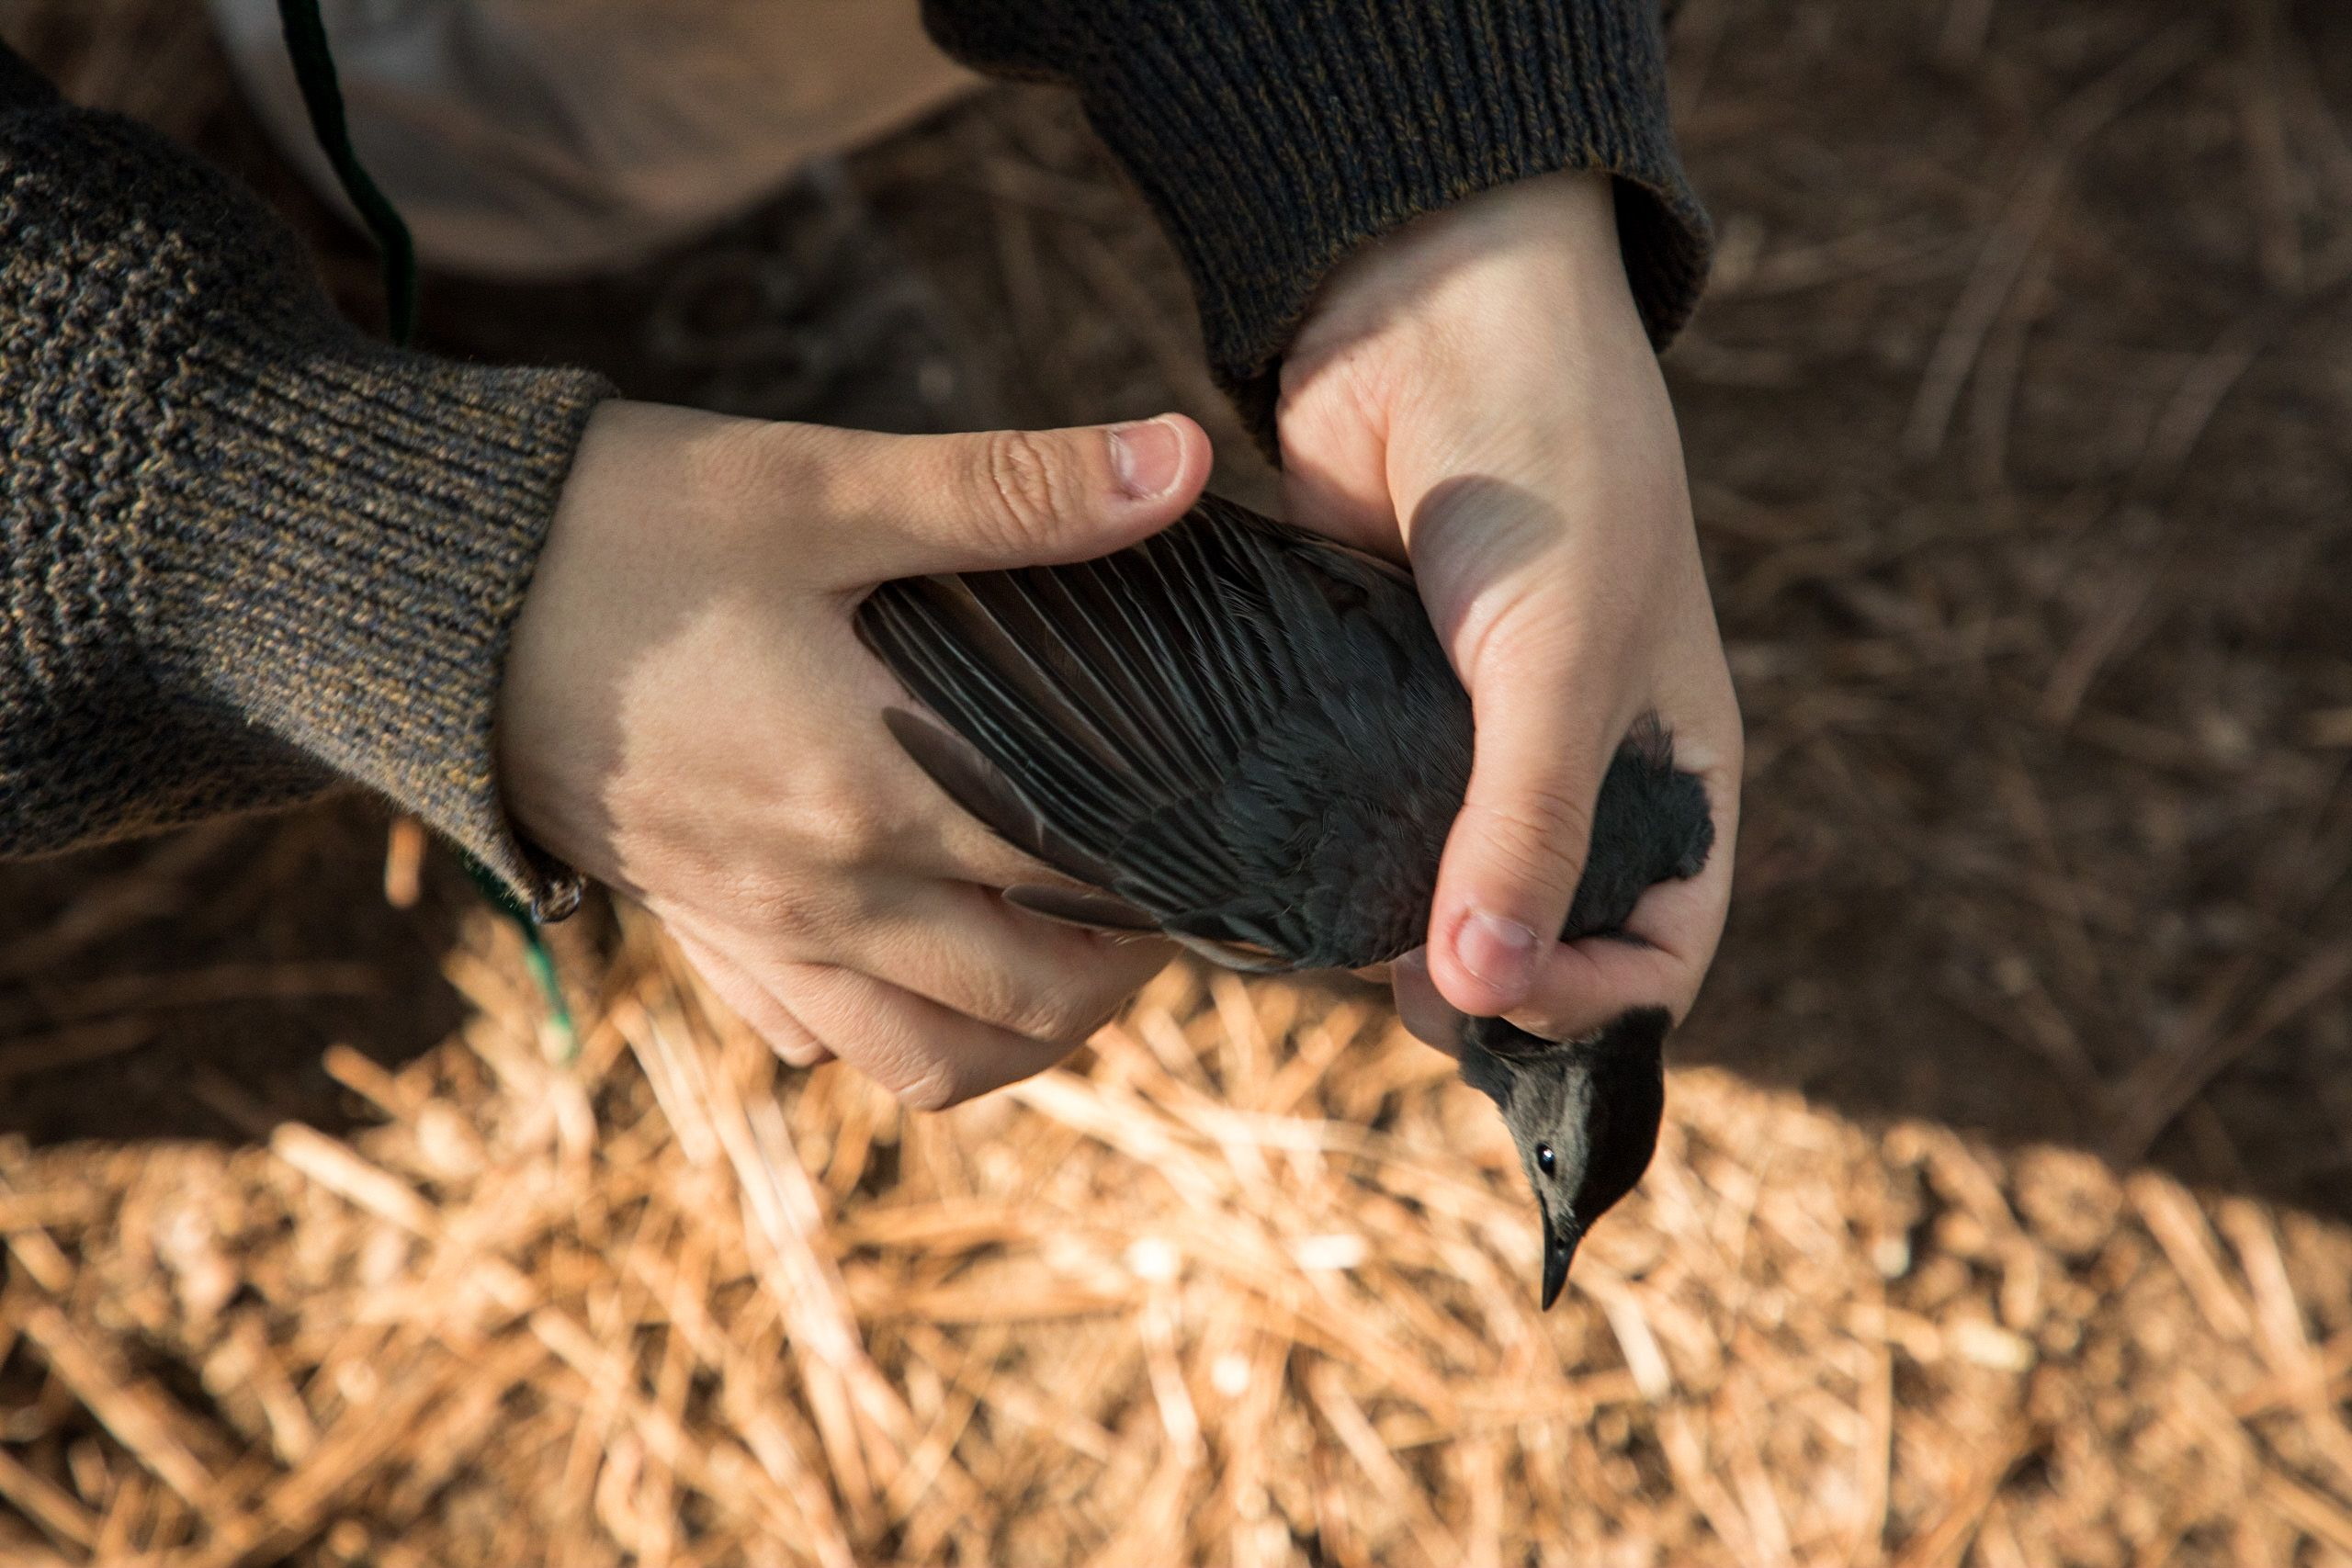 Close view of two hands holding a dark colored bird.